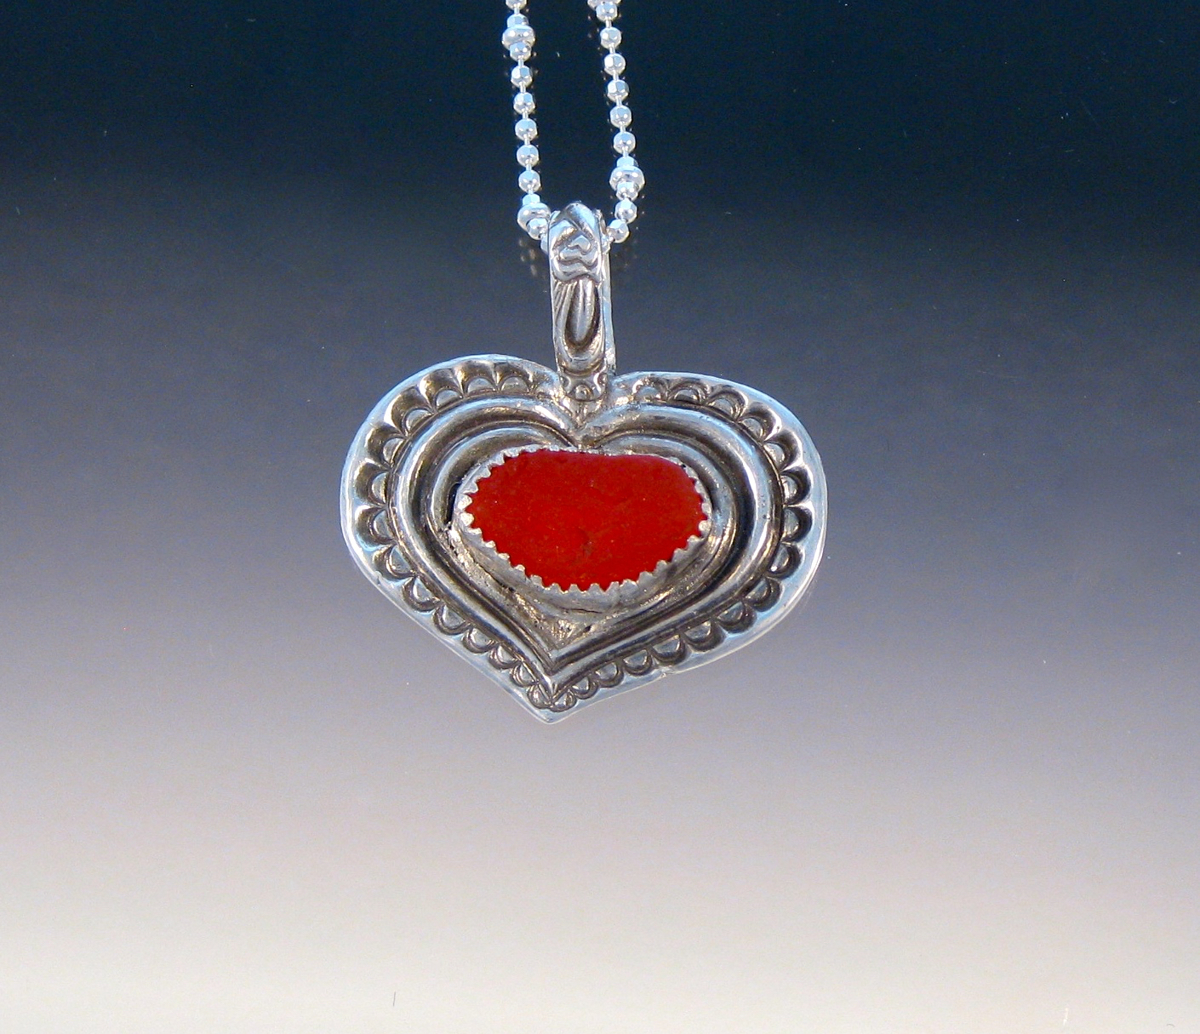 P5246 - Orangey/red heart pendant (large view)